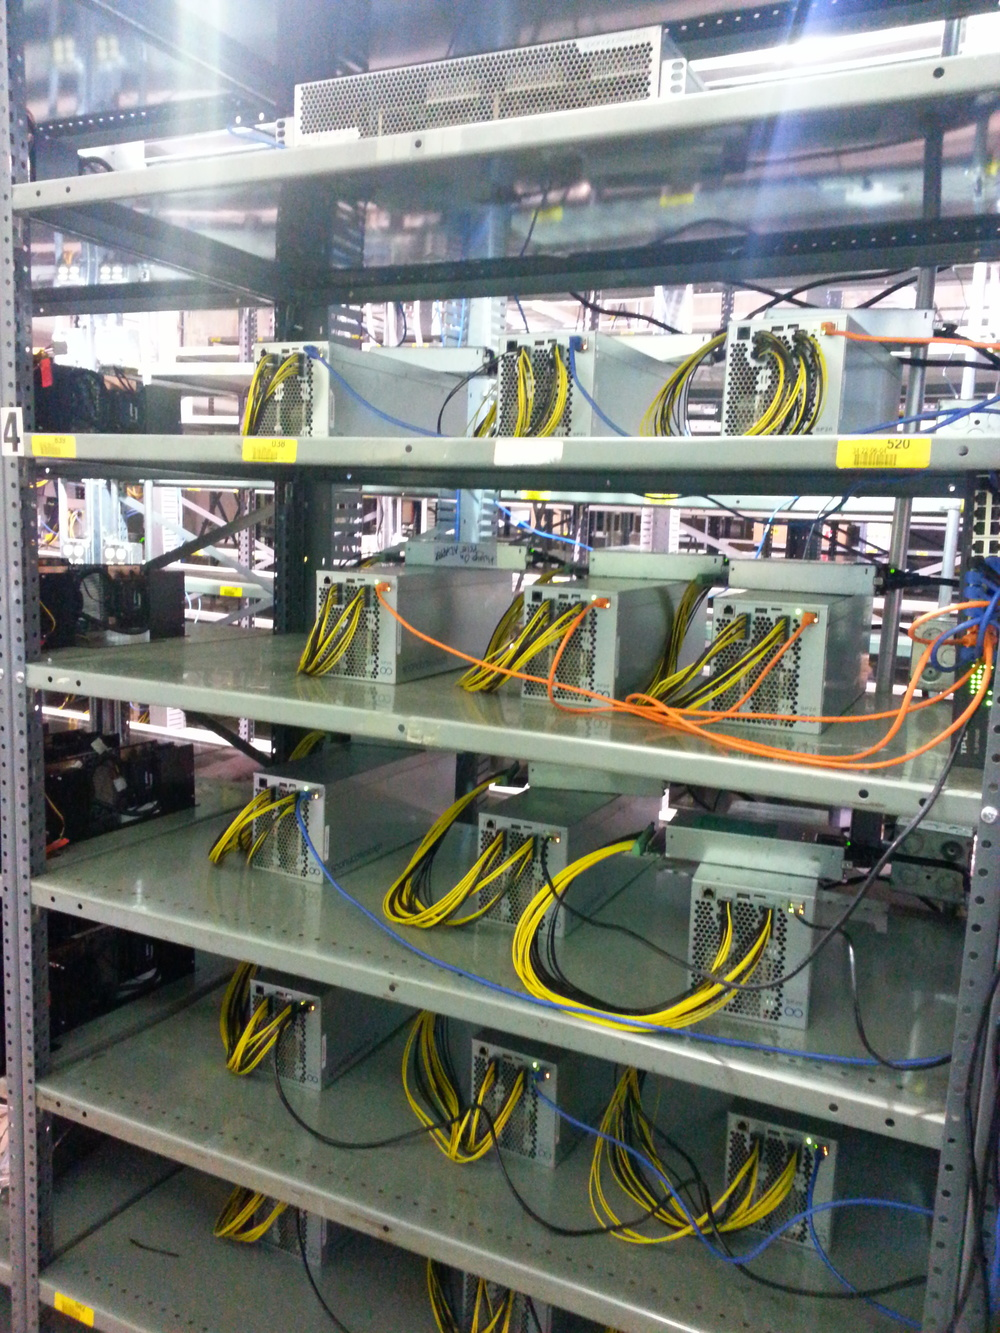 15 sp20s on shelf mining at asicspace facility